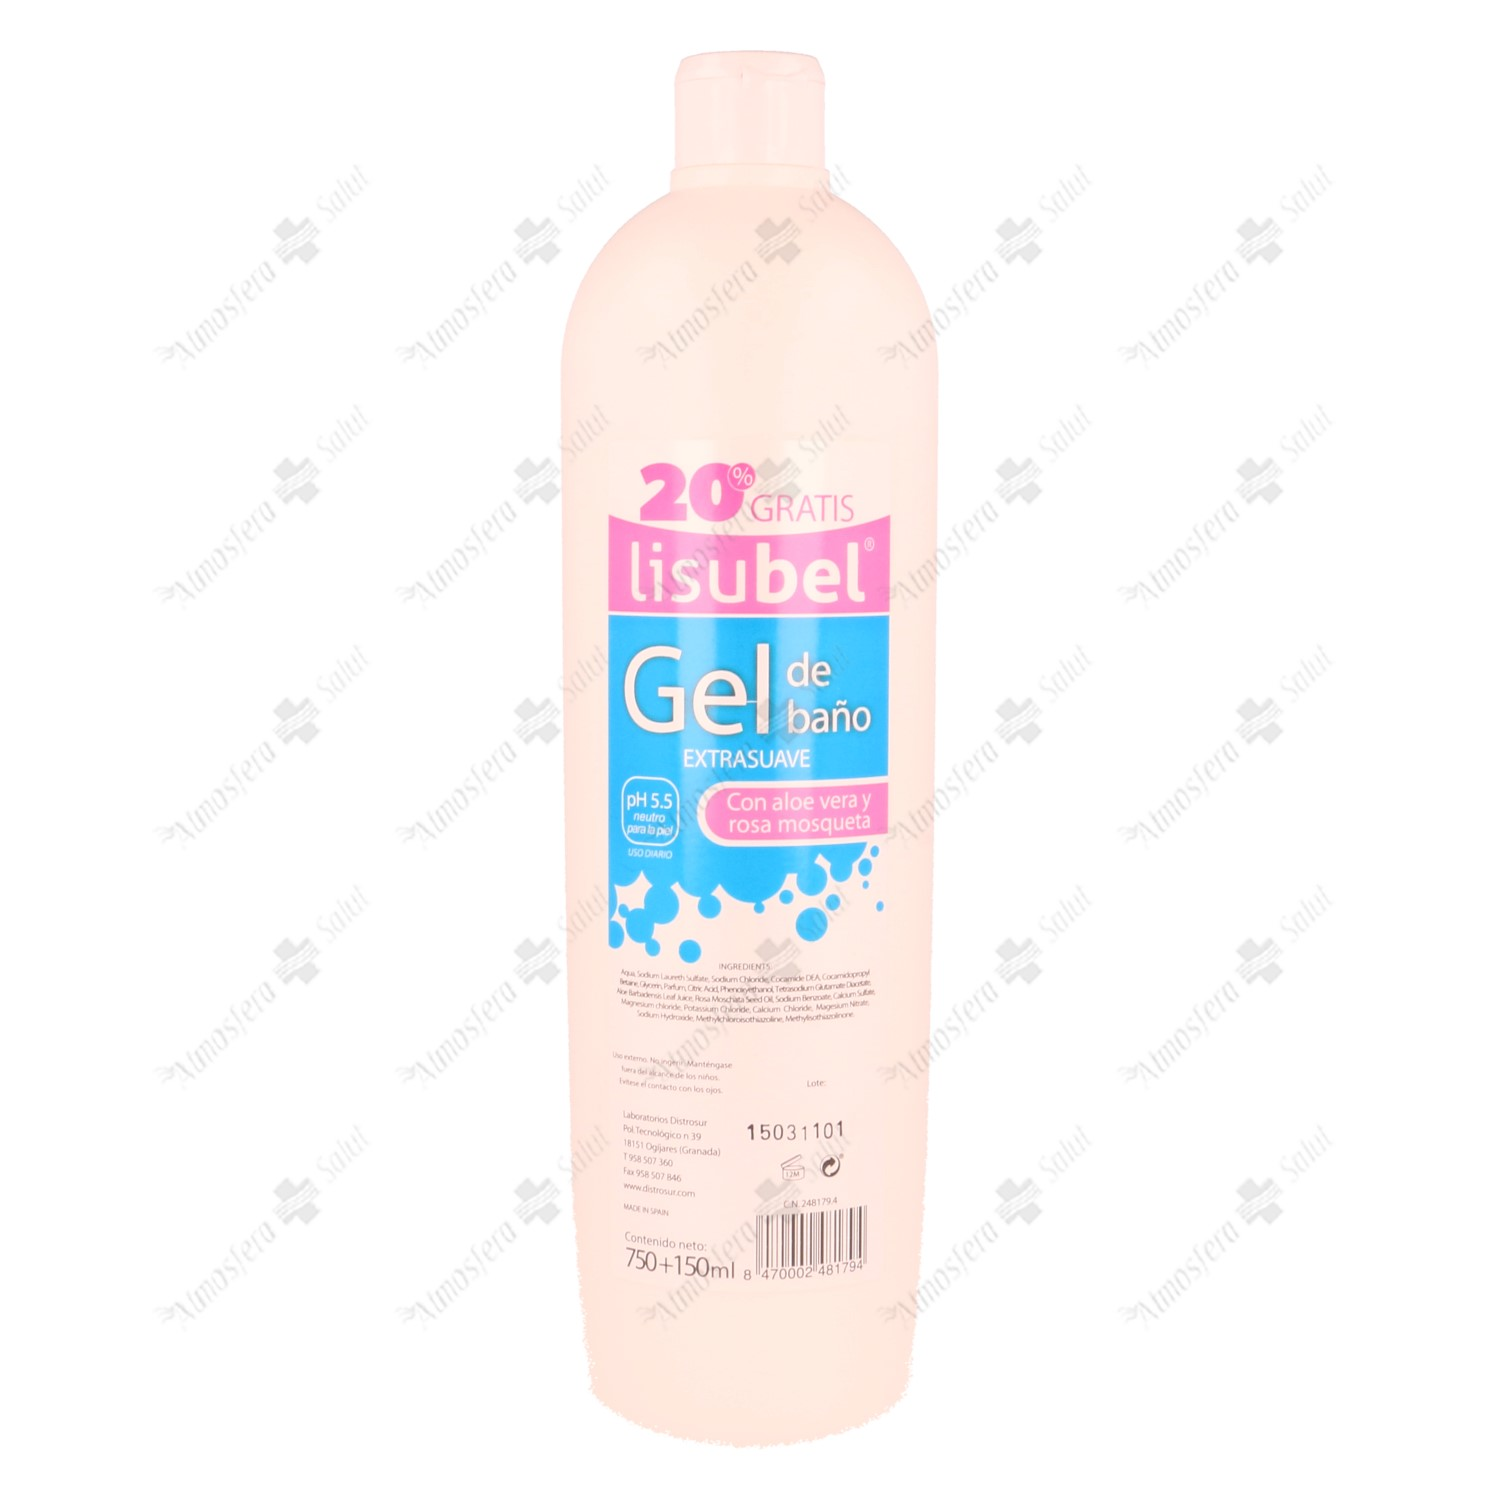 GEL BAÑO EXTRASUAVE LISUBEL 900 ML- 248179 -  DISTROSUR